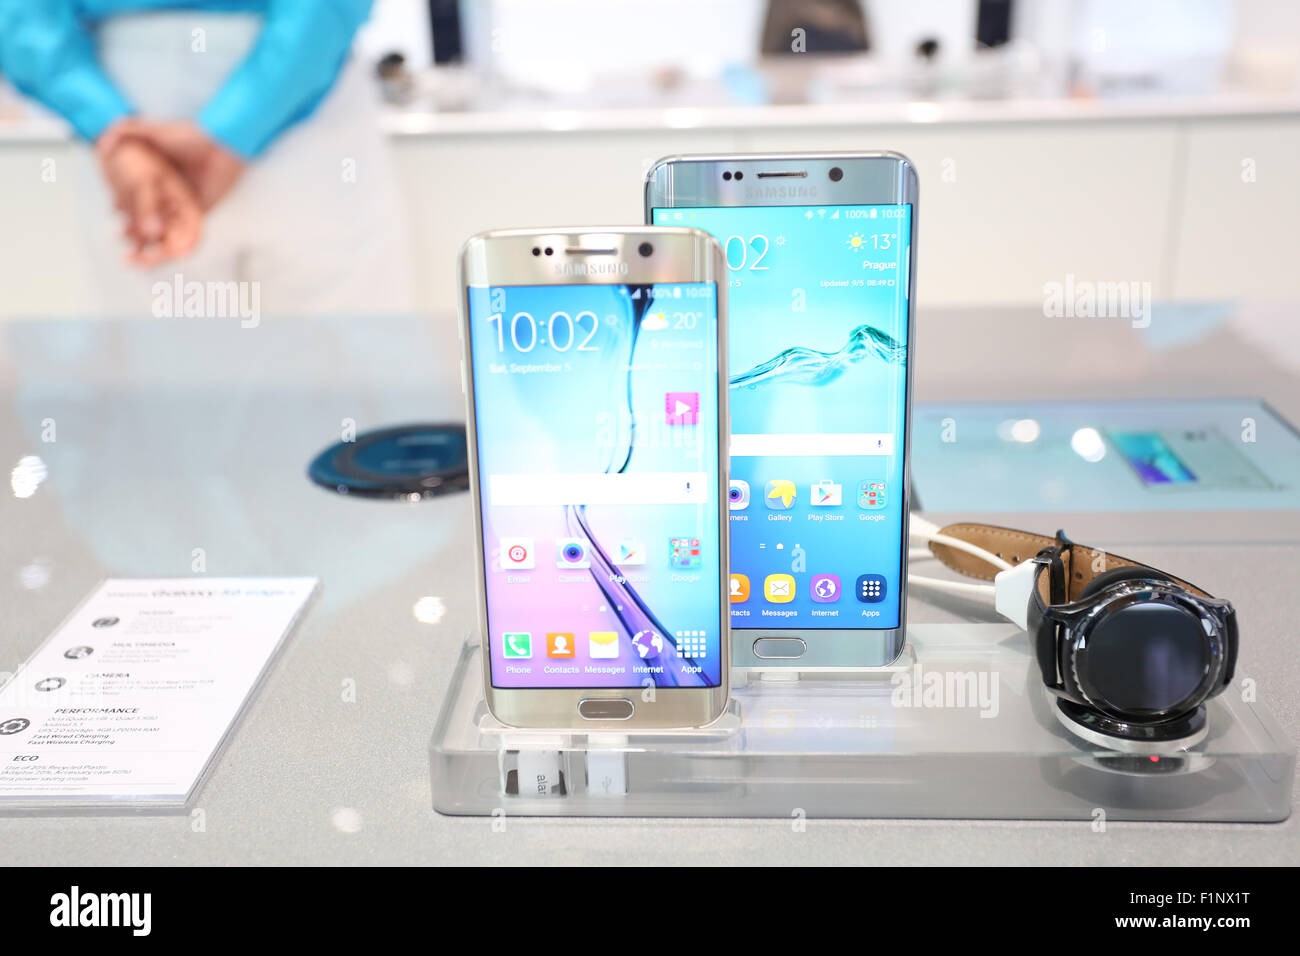 Berlin, Germany, 5th September, 2015: Samsung presents the company' s recent smartphone Samsung Galaxy S6 edge+ - Stock Image